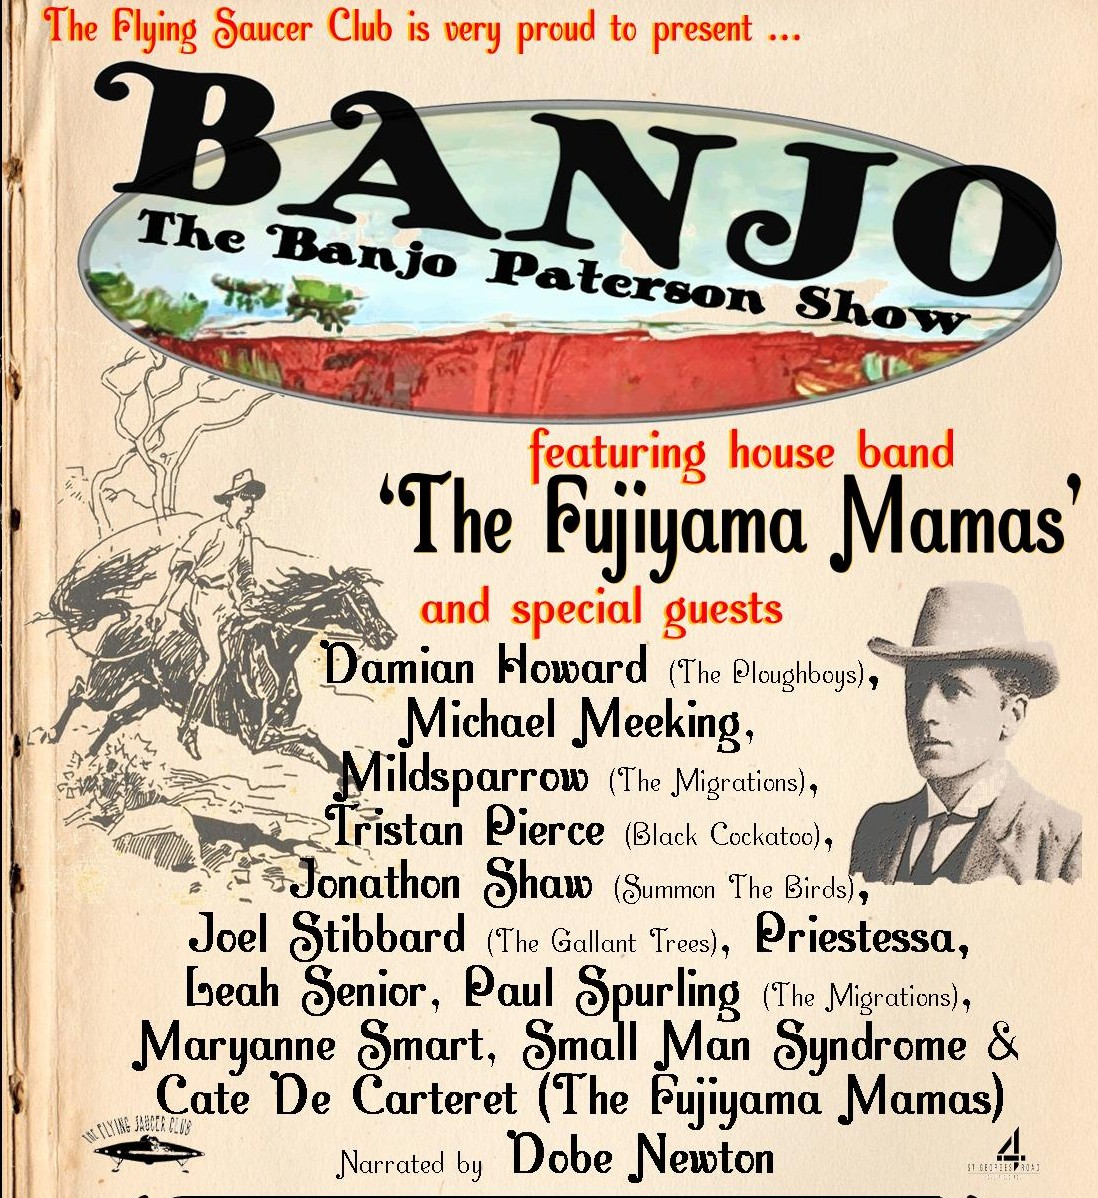 The-Banjo-Paterson-Show